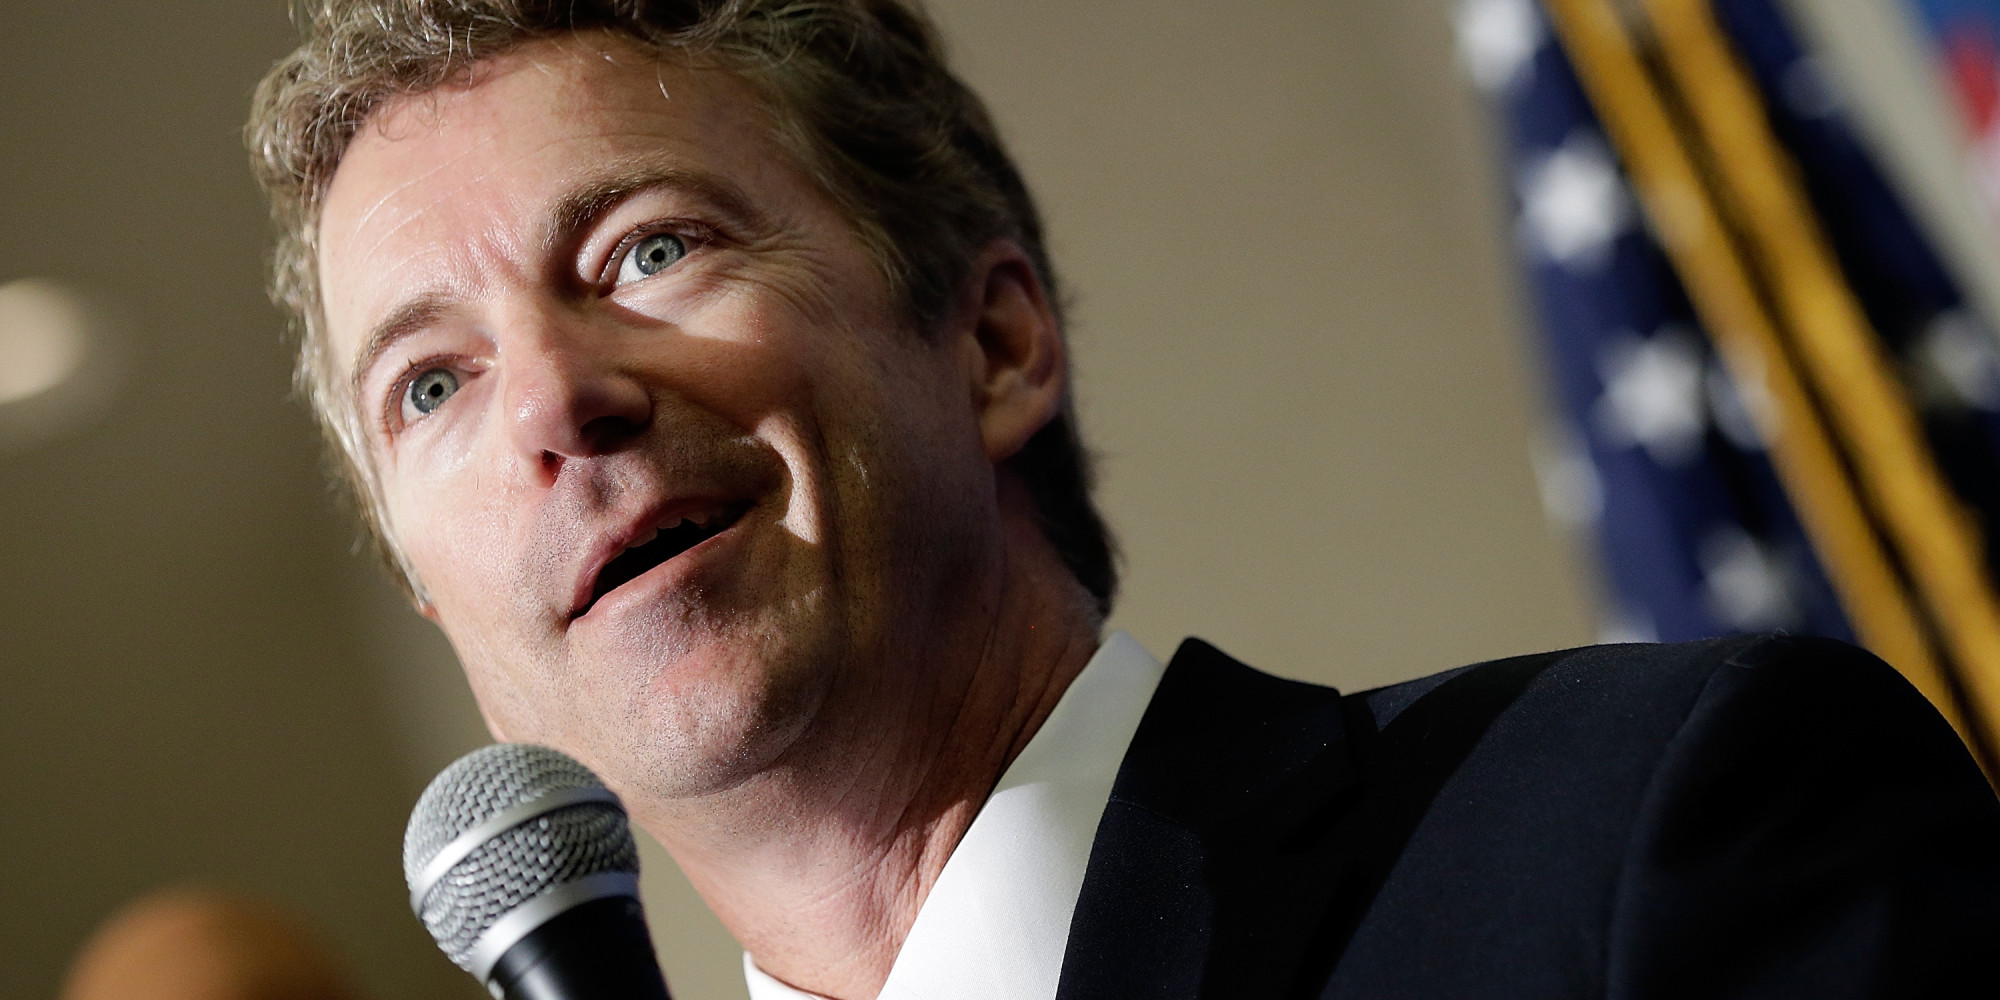 rand paul plagiarized speech from rachel maddow says rand paul plagiarized speech from rachel maddow says the huffington post